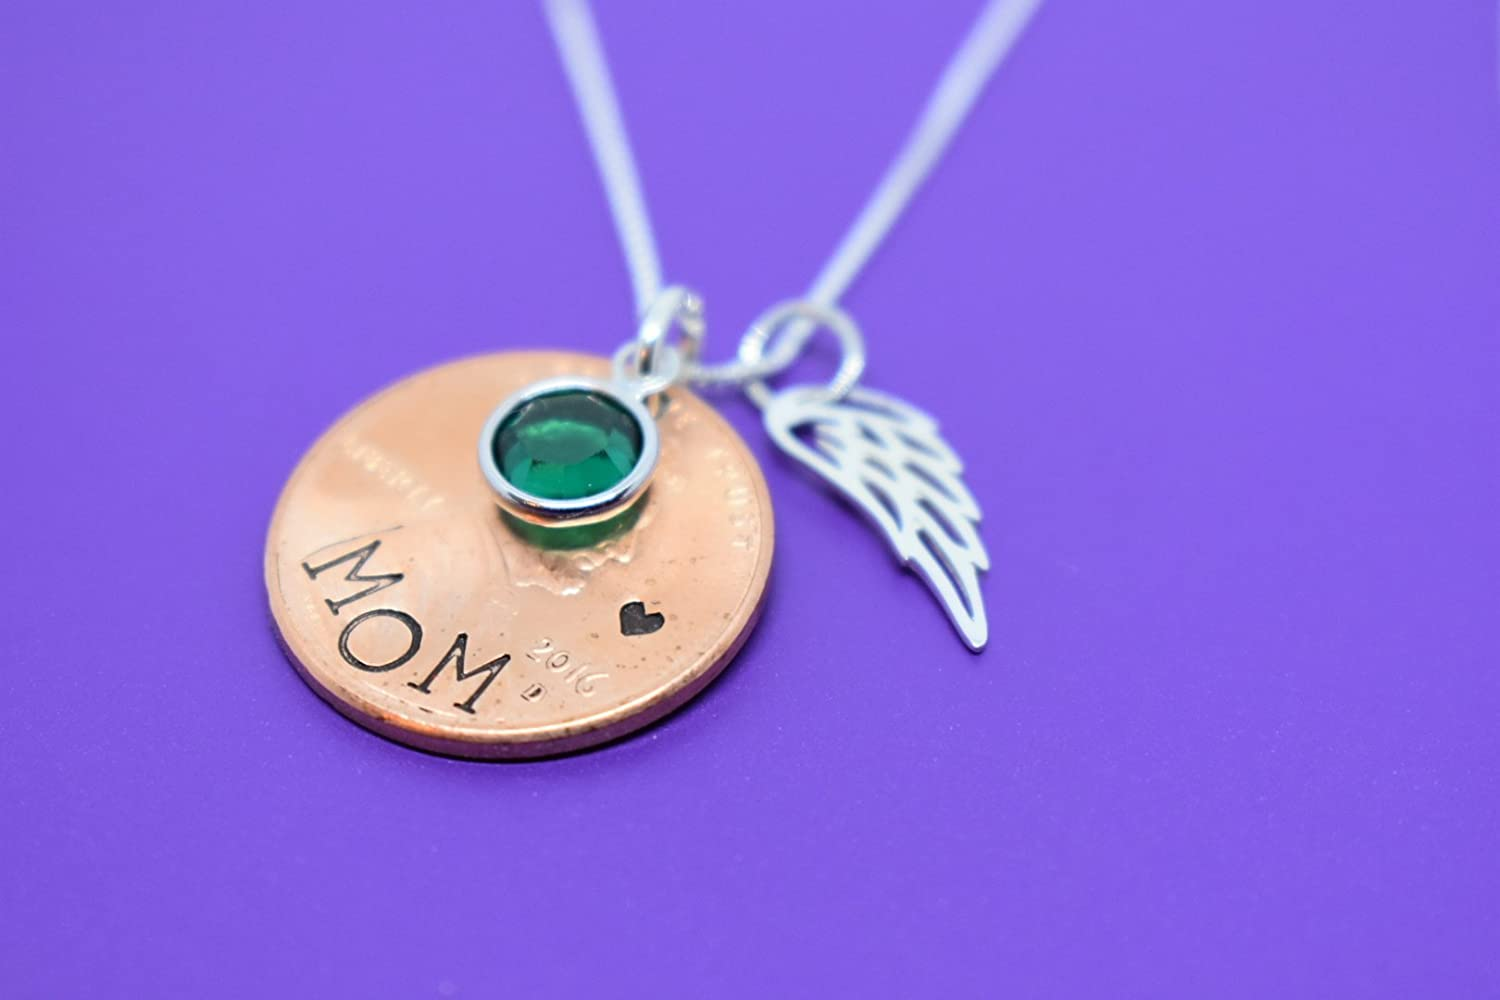 Memorial Necklace, Jewelry - Penny from Heaven - Penny Necklace -  Remembrance necklace - Mom - Dad